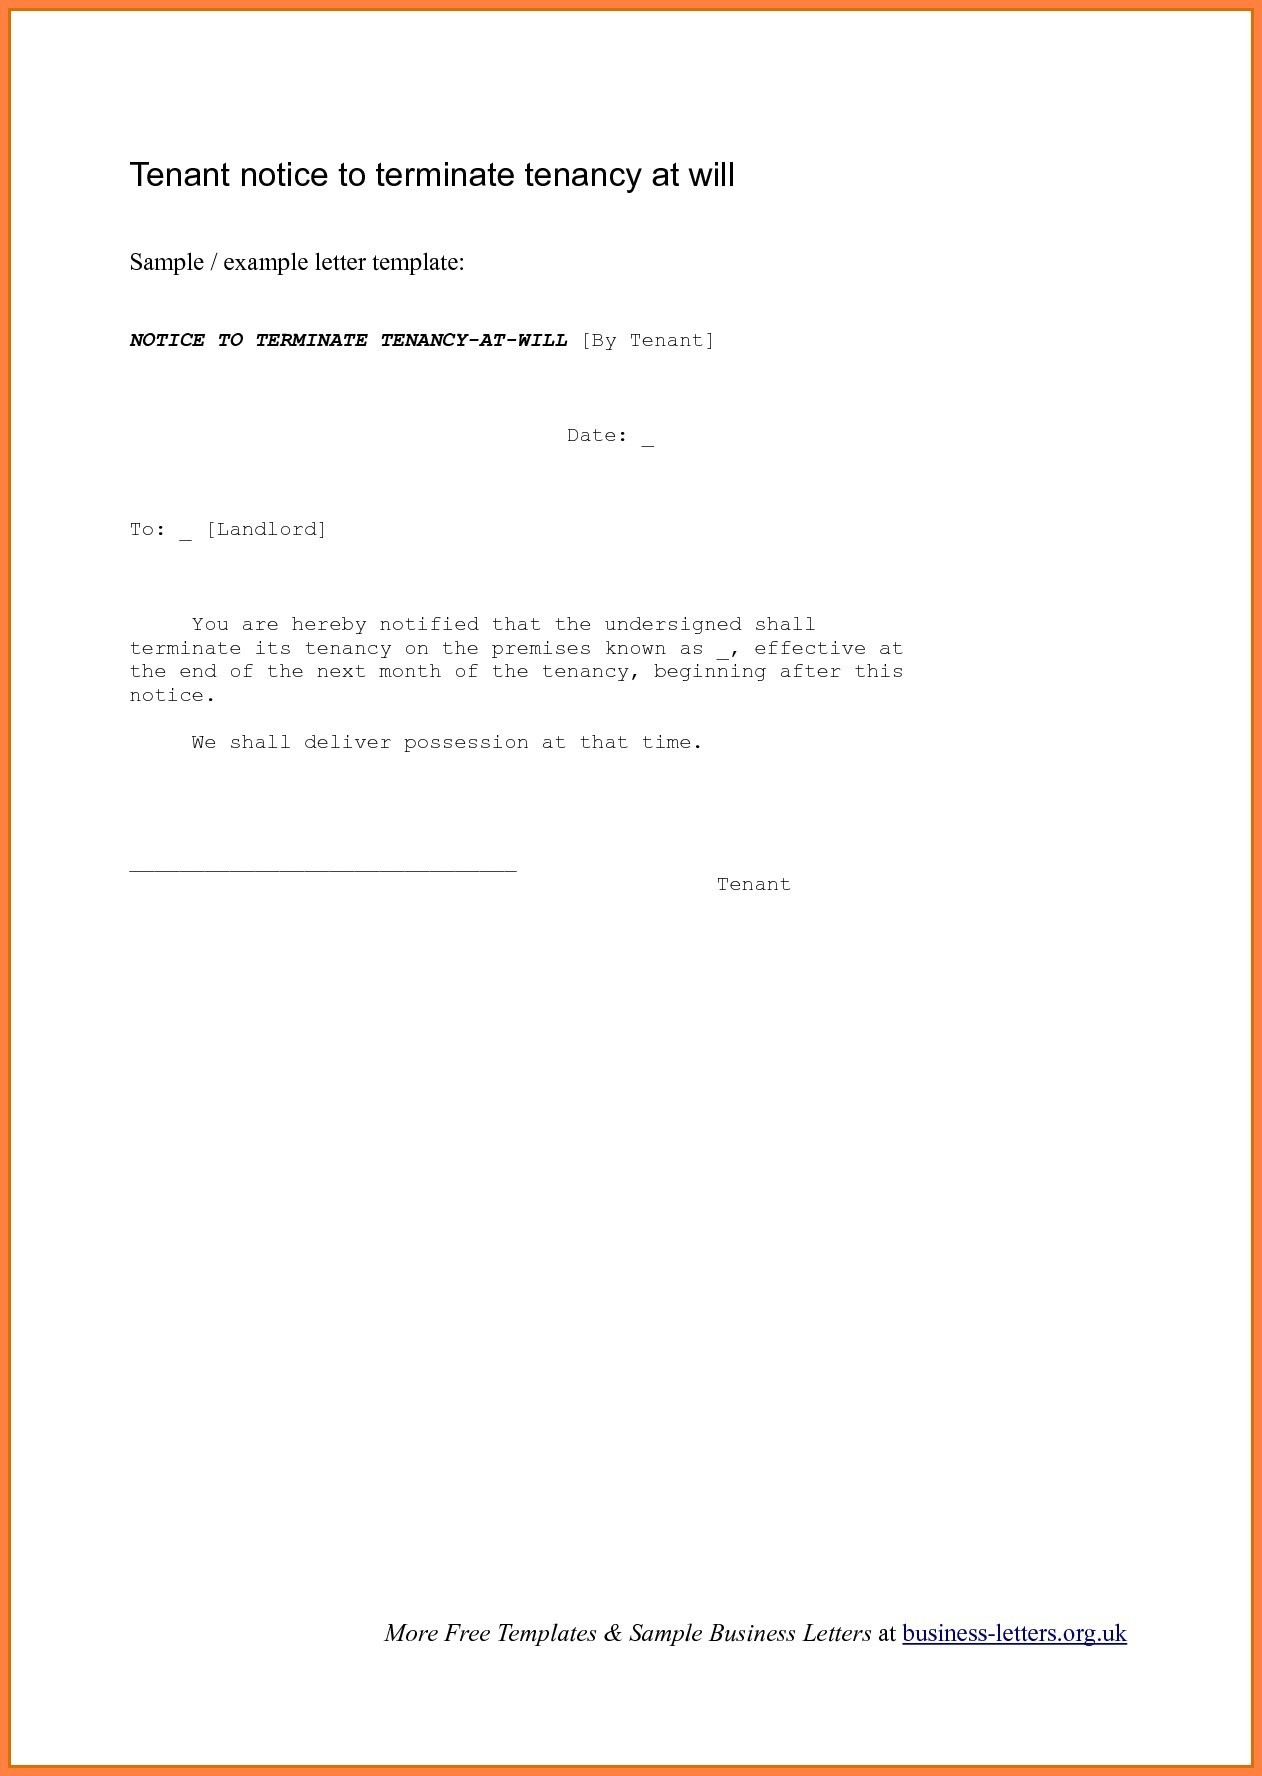 free resignation letter template microsoft word download Collection-Sample Resignation Letter format Download Best Gallery 9 Professional Resignation Letter Sample with Notice 16-n